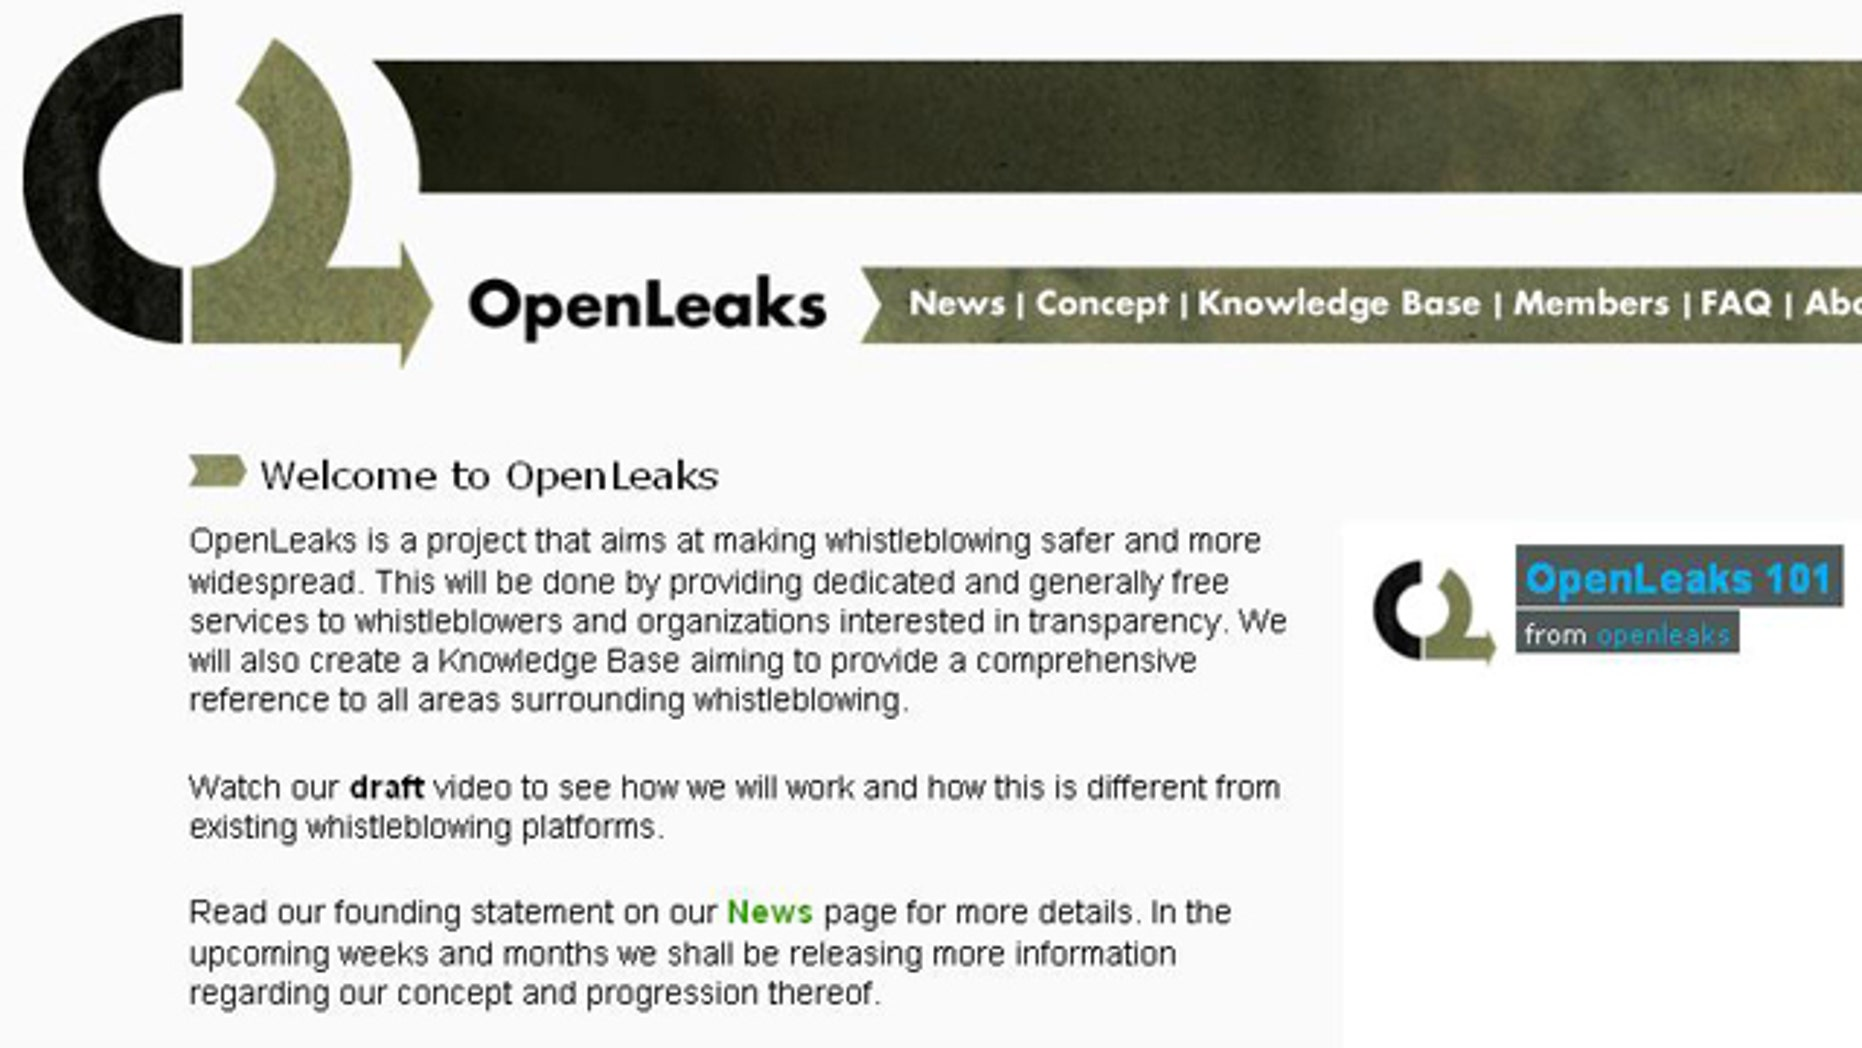 The website for WiiLeaks-competitor OpenLeaks.org, which launched Thursday after information about the site was itself leaked.